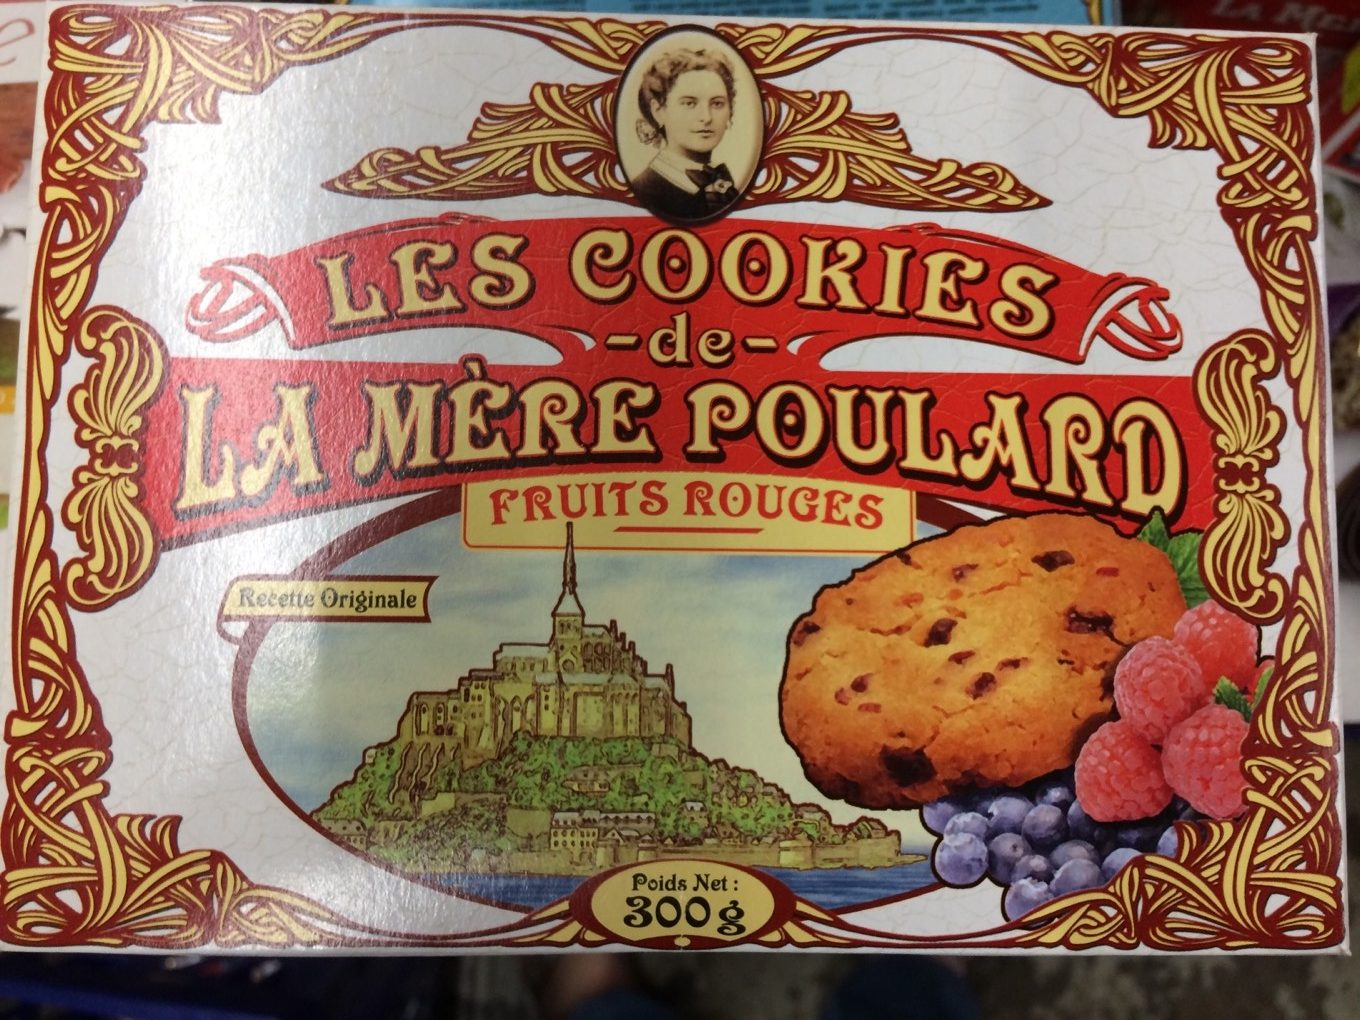 Les Cookies de la Mère Poulard Fruits Rouges - Product - fr